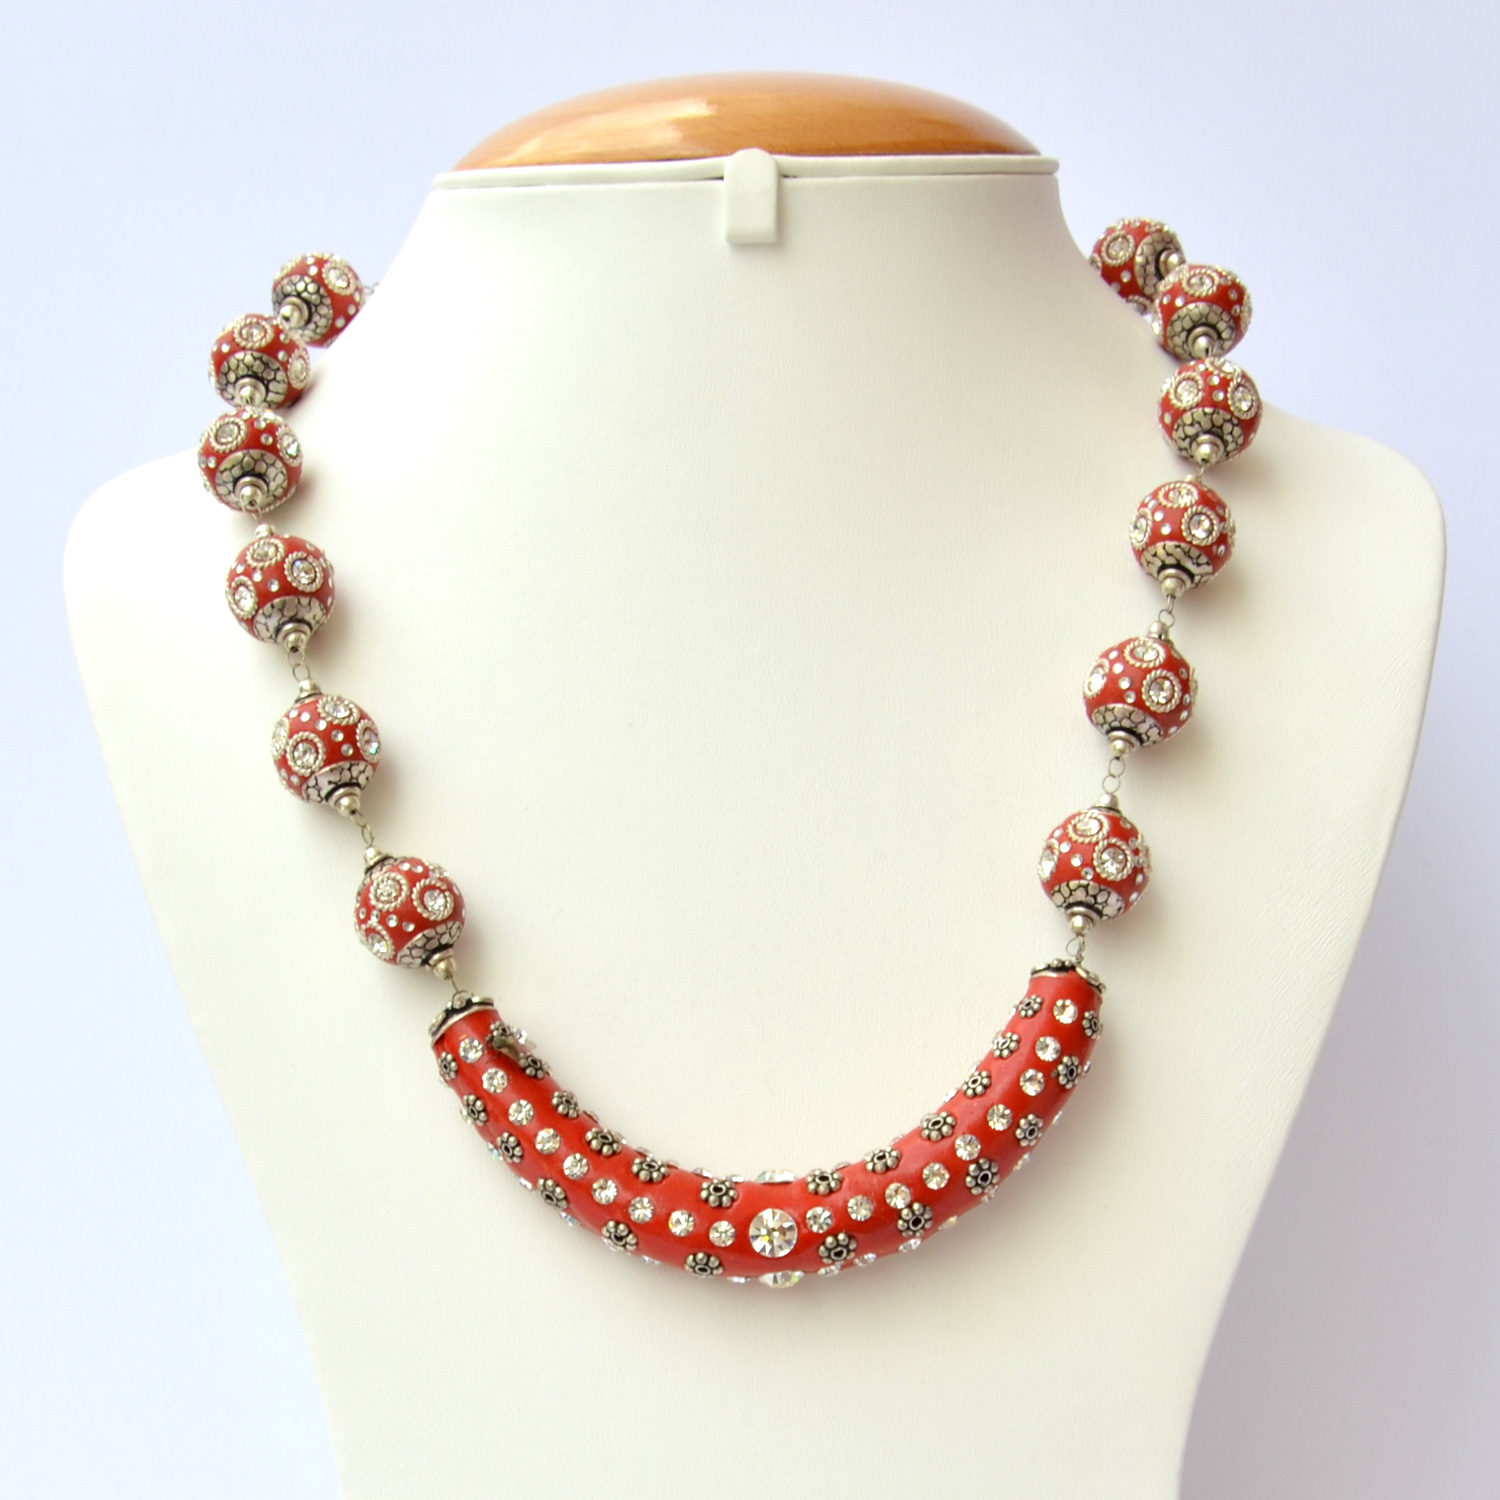 Perfectly matching jewelry sets do the work for you! Necklaces are sold with matching earrings.